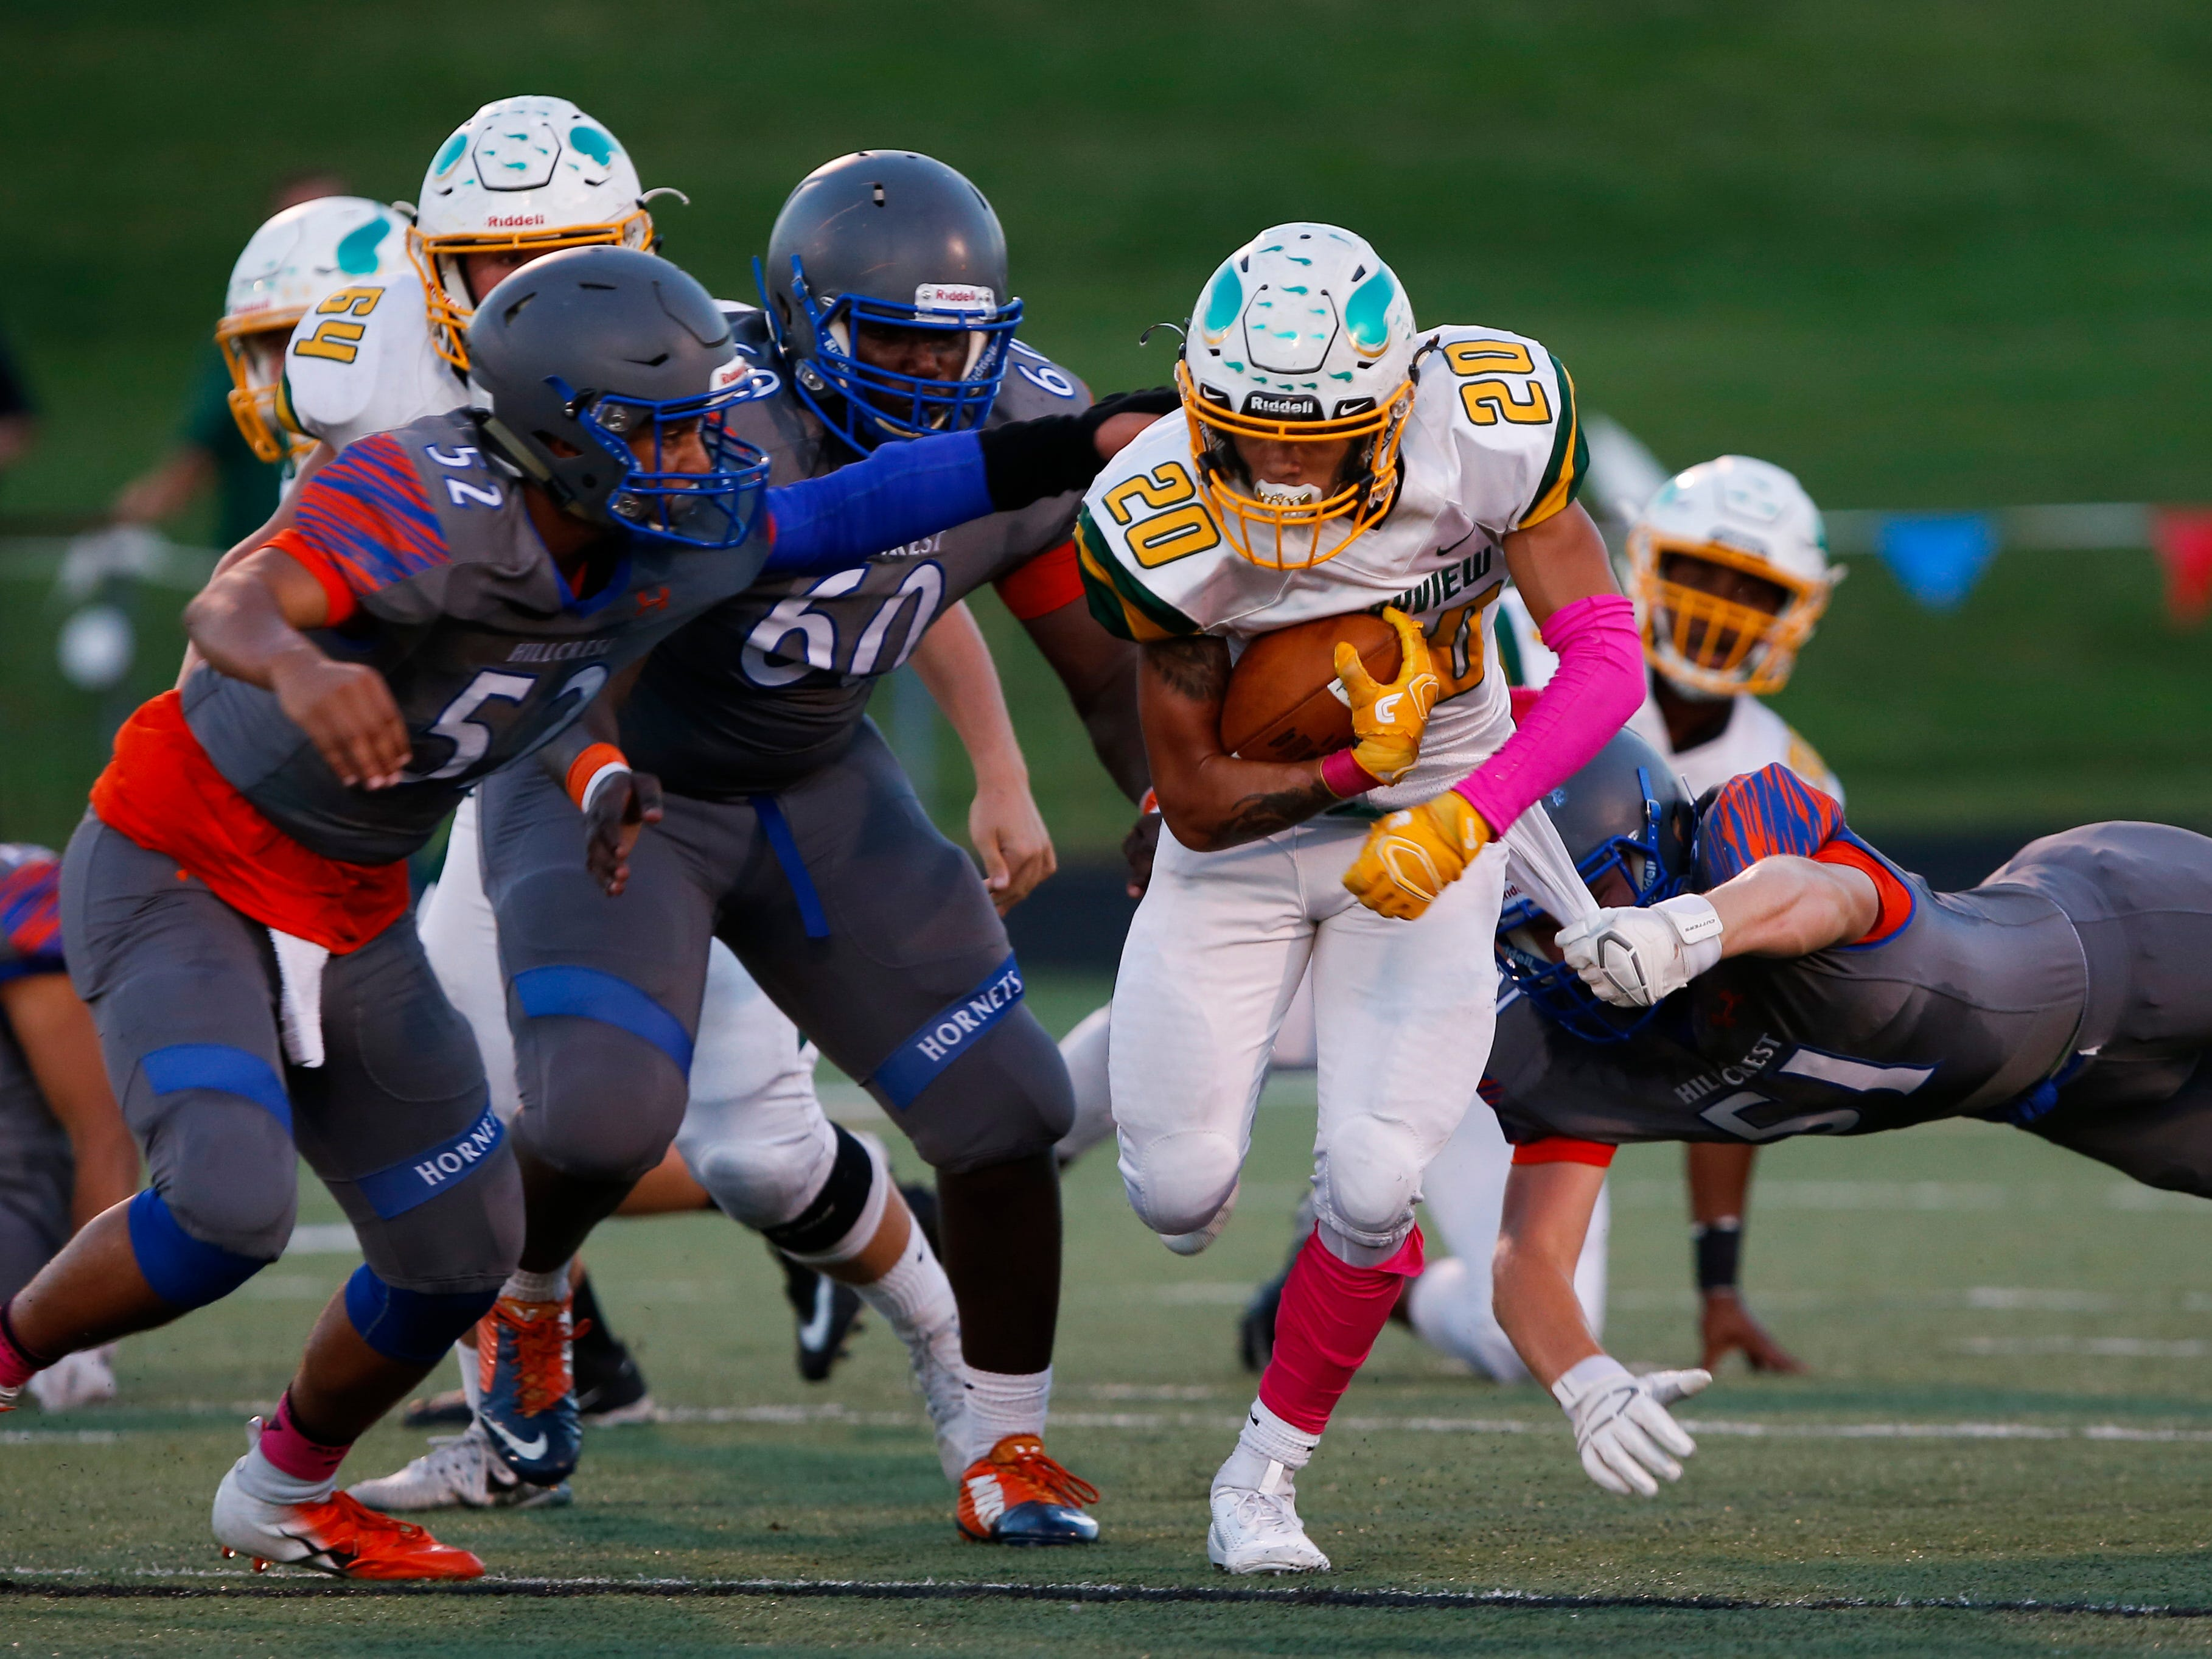 Parkview's Jevin Huddleston carries the ball through a swarm of Hillcrest Hornets during a game at Hillcrest on Friday, Oct. 5, 2018